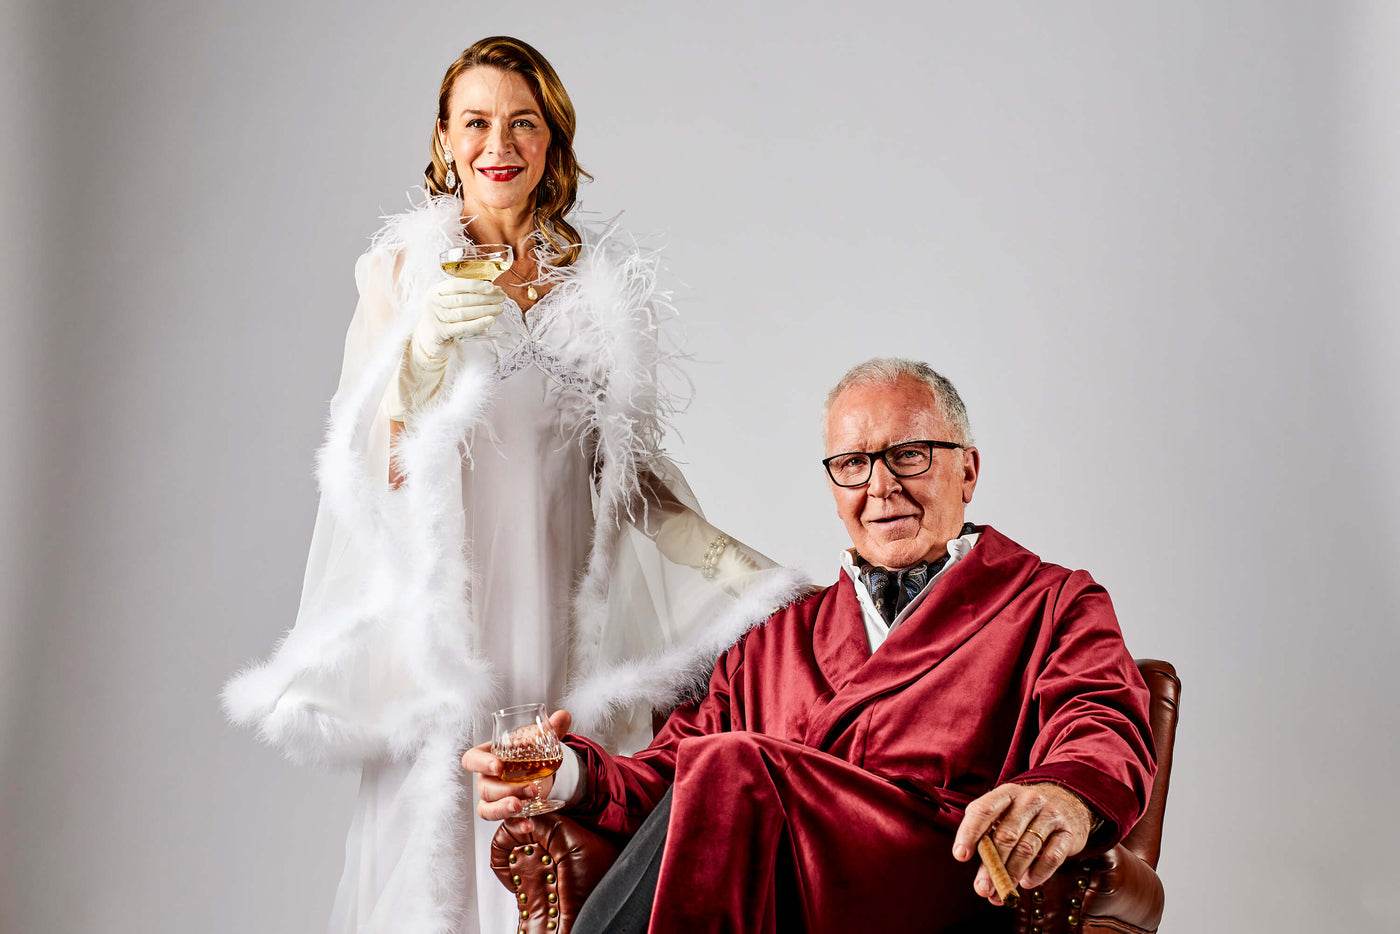 Male and female wearing luxury robes in a shoot for Melbourne video production company Enamoured Iris